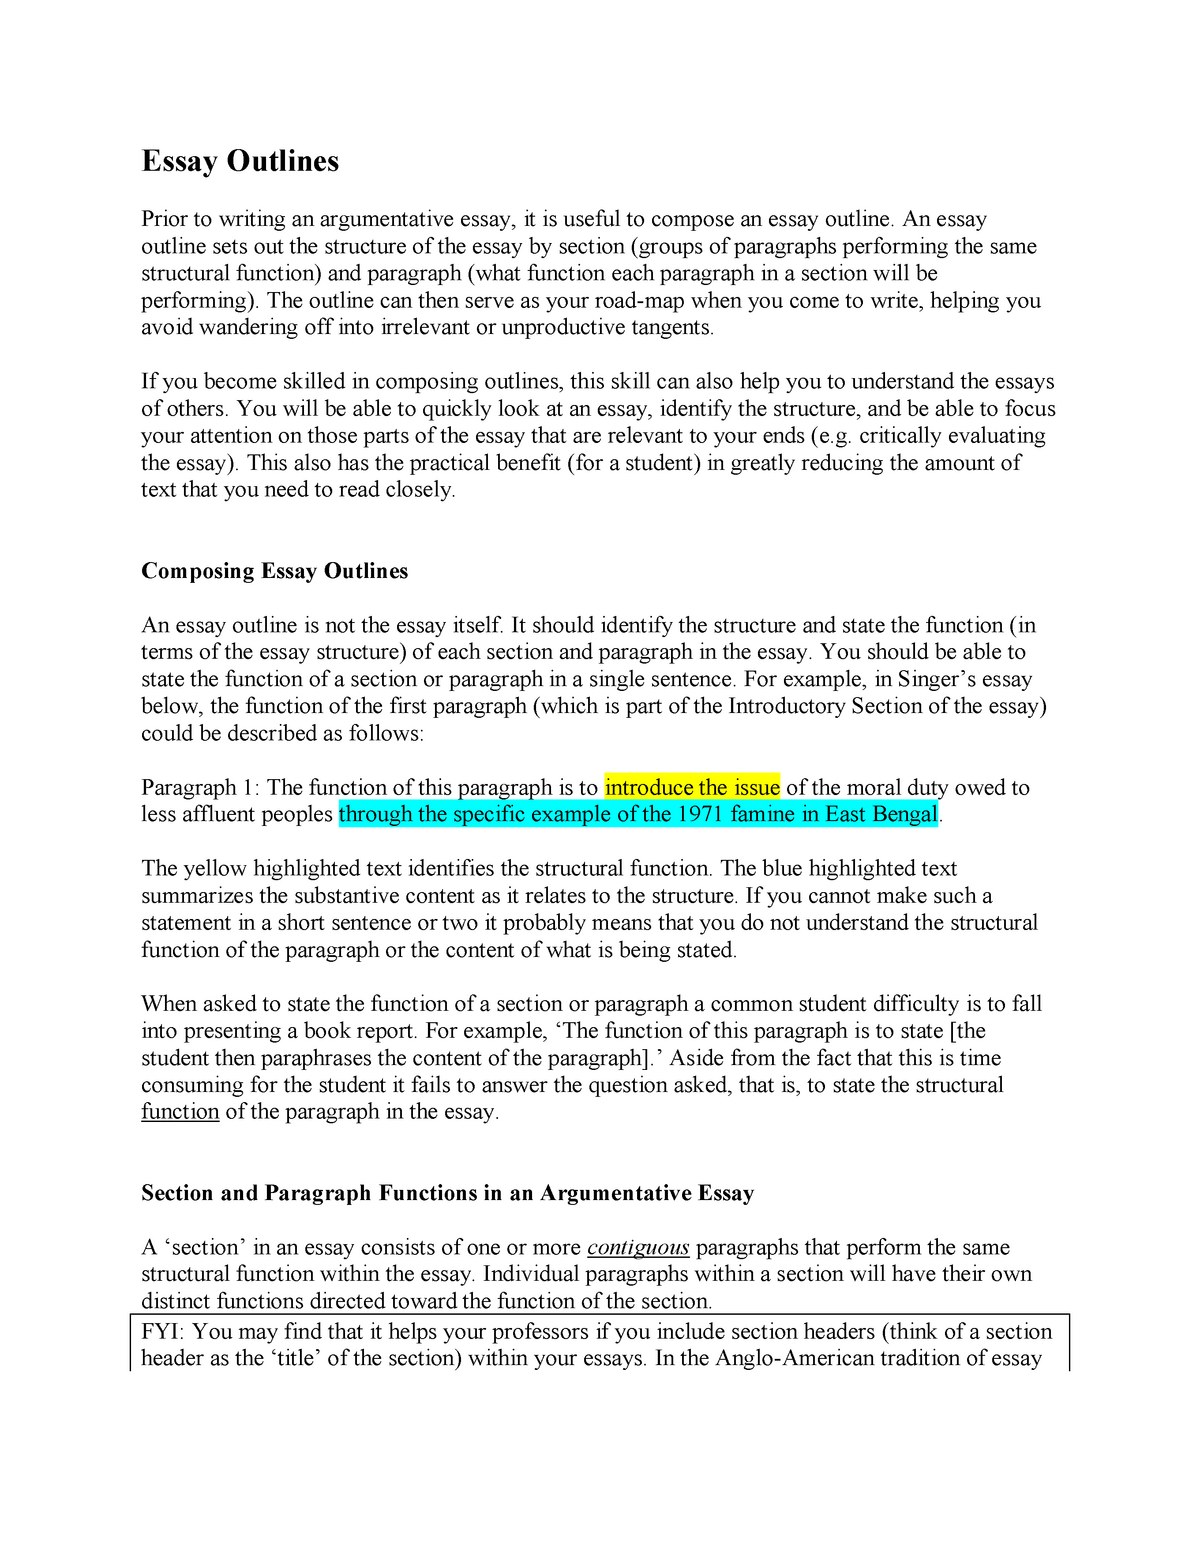 Example Essay English  Essay Sample For High School also College Vs High School Essay Compare And Contrast Essay Handout Excerpt From Singer Famine Affluence And  Essay Thesis Statement